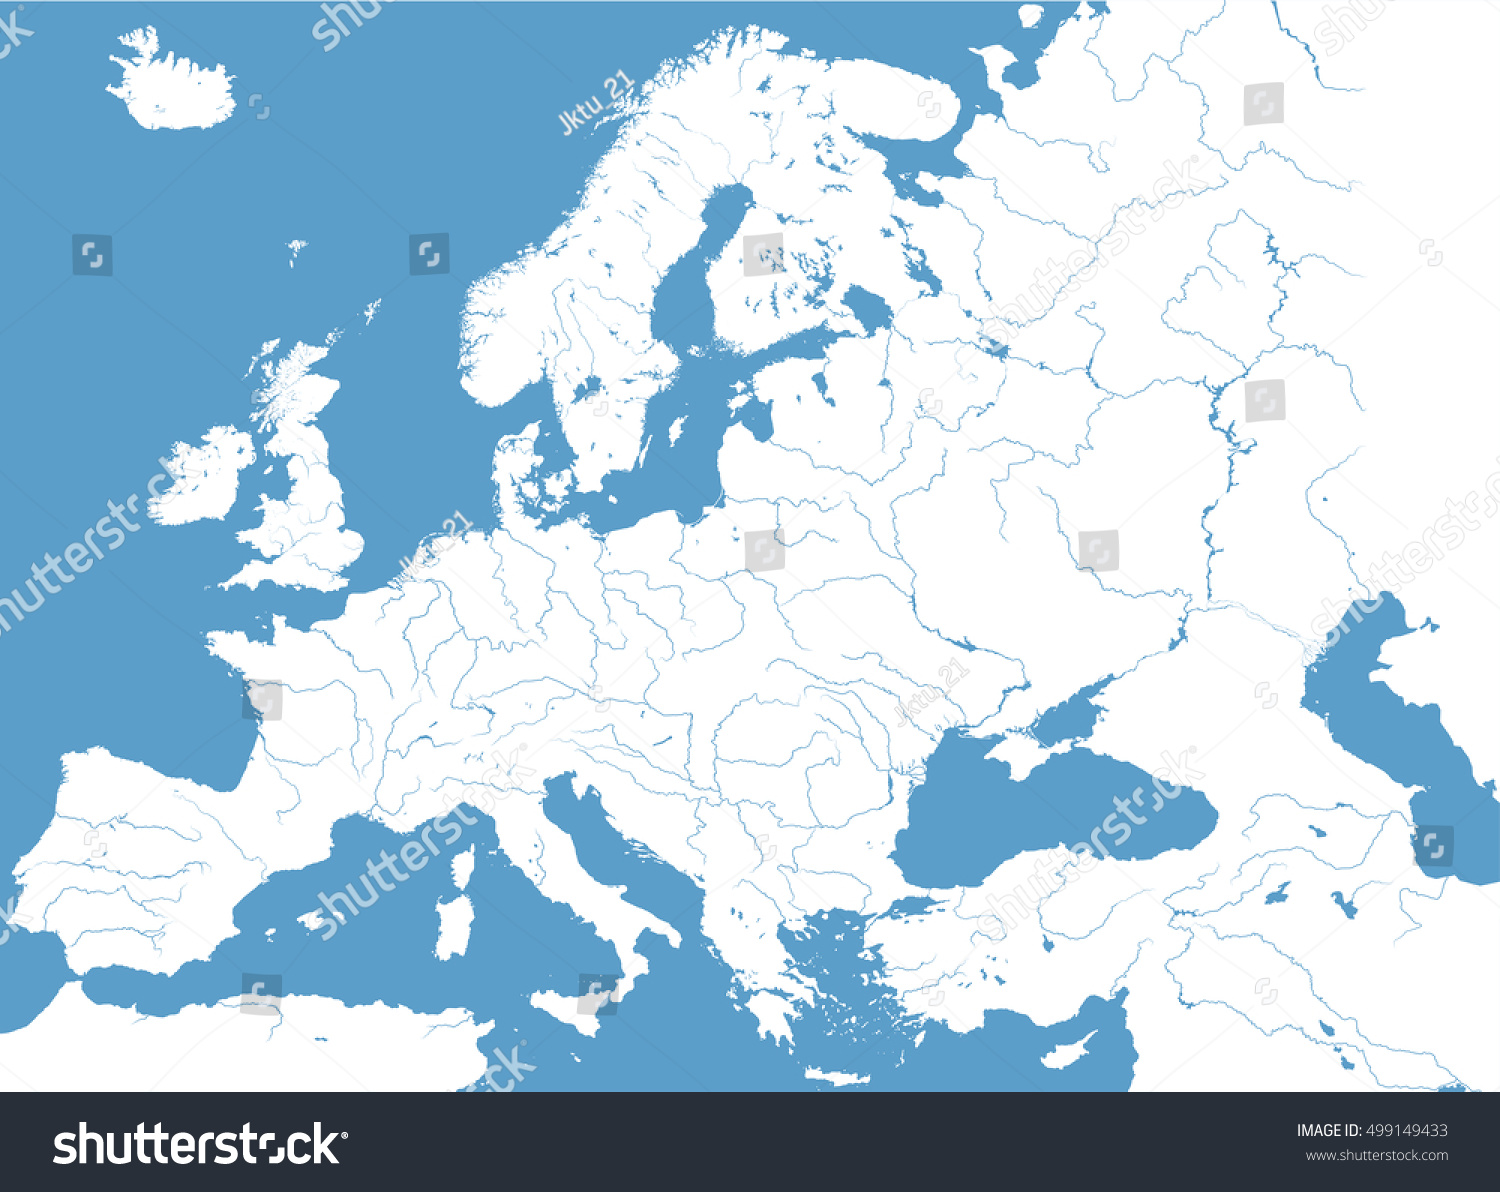 Picture of: High Detailed Vector Map Europe Main Stock Vector Royalty Free 499149433